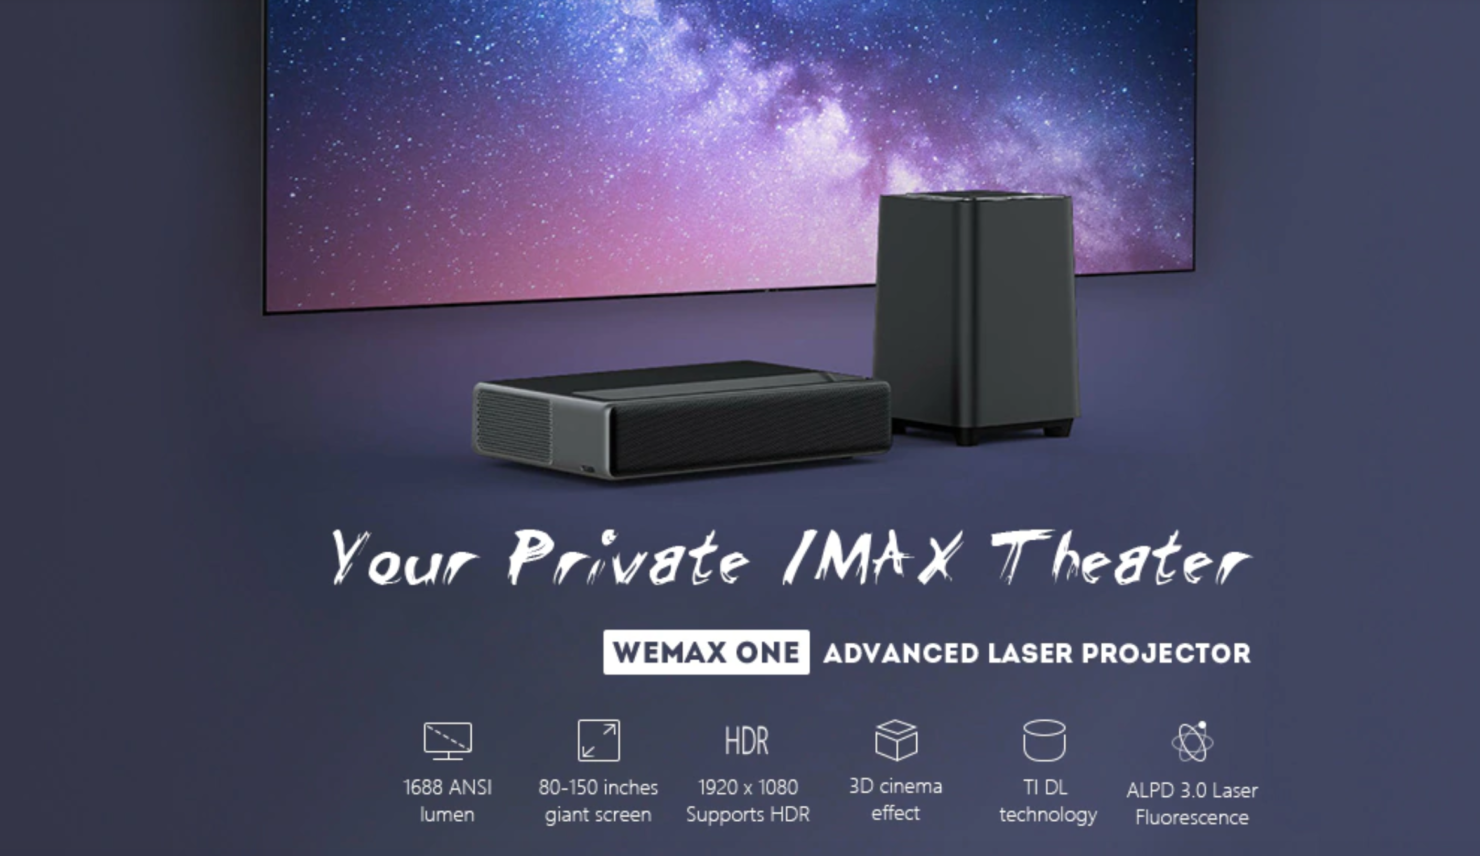 wemax-one-pro-projector